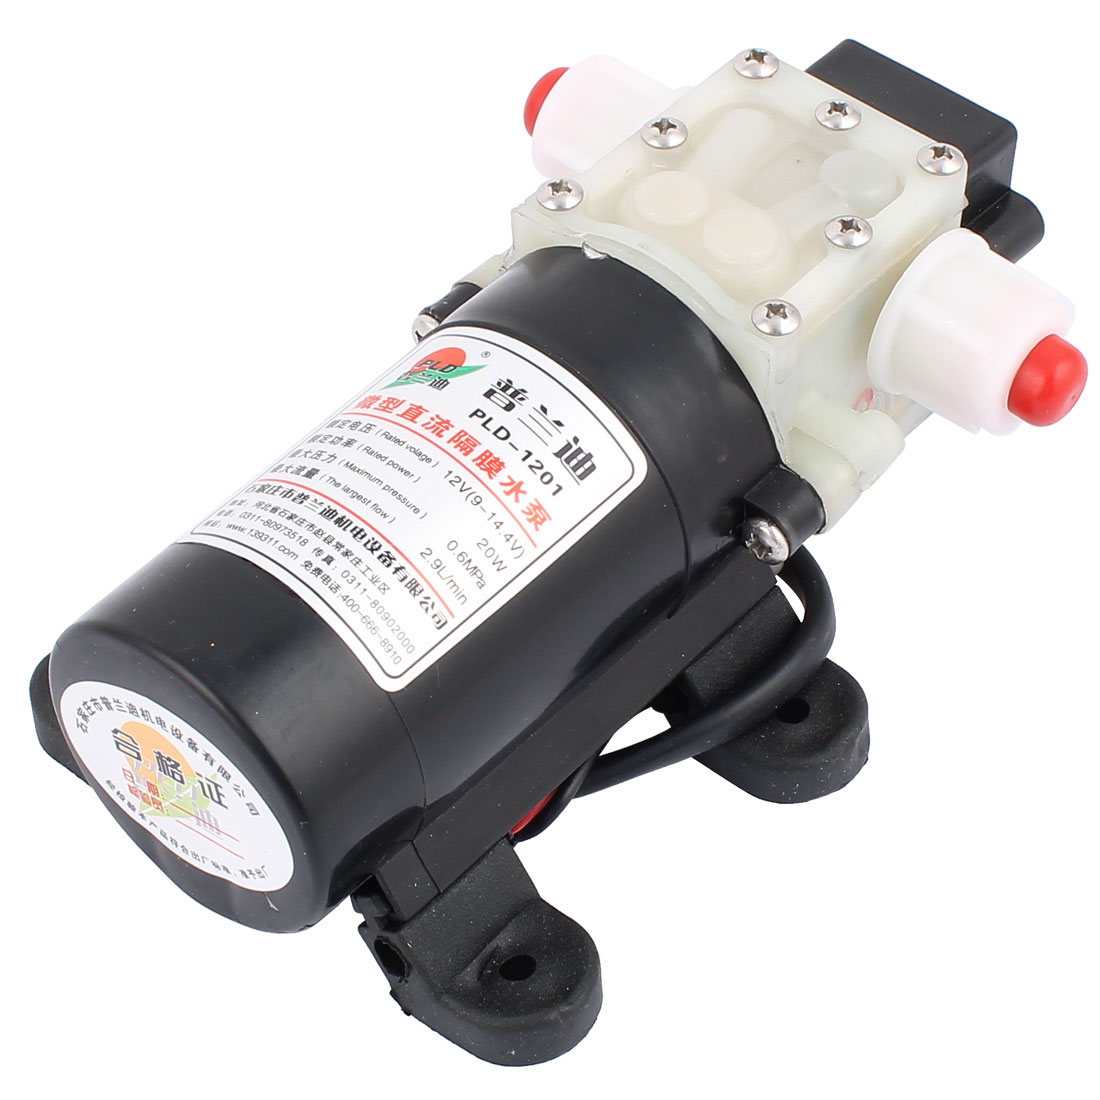 DC 12V 20W Micro Motor Pump 10mm Thread Outlet Inlet Diaphragm Pump